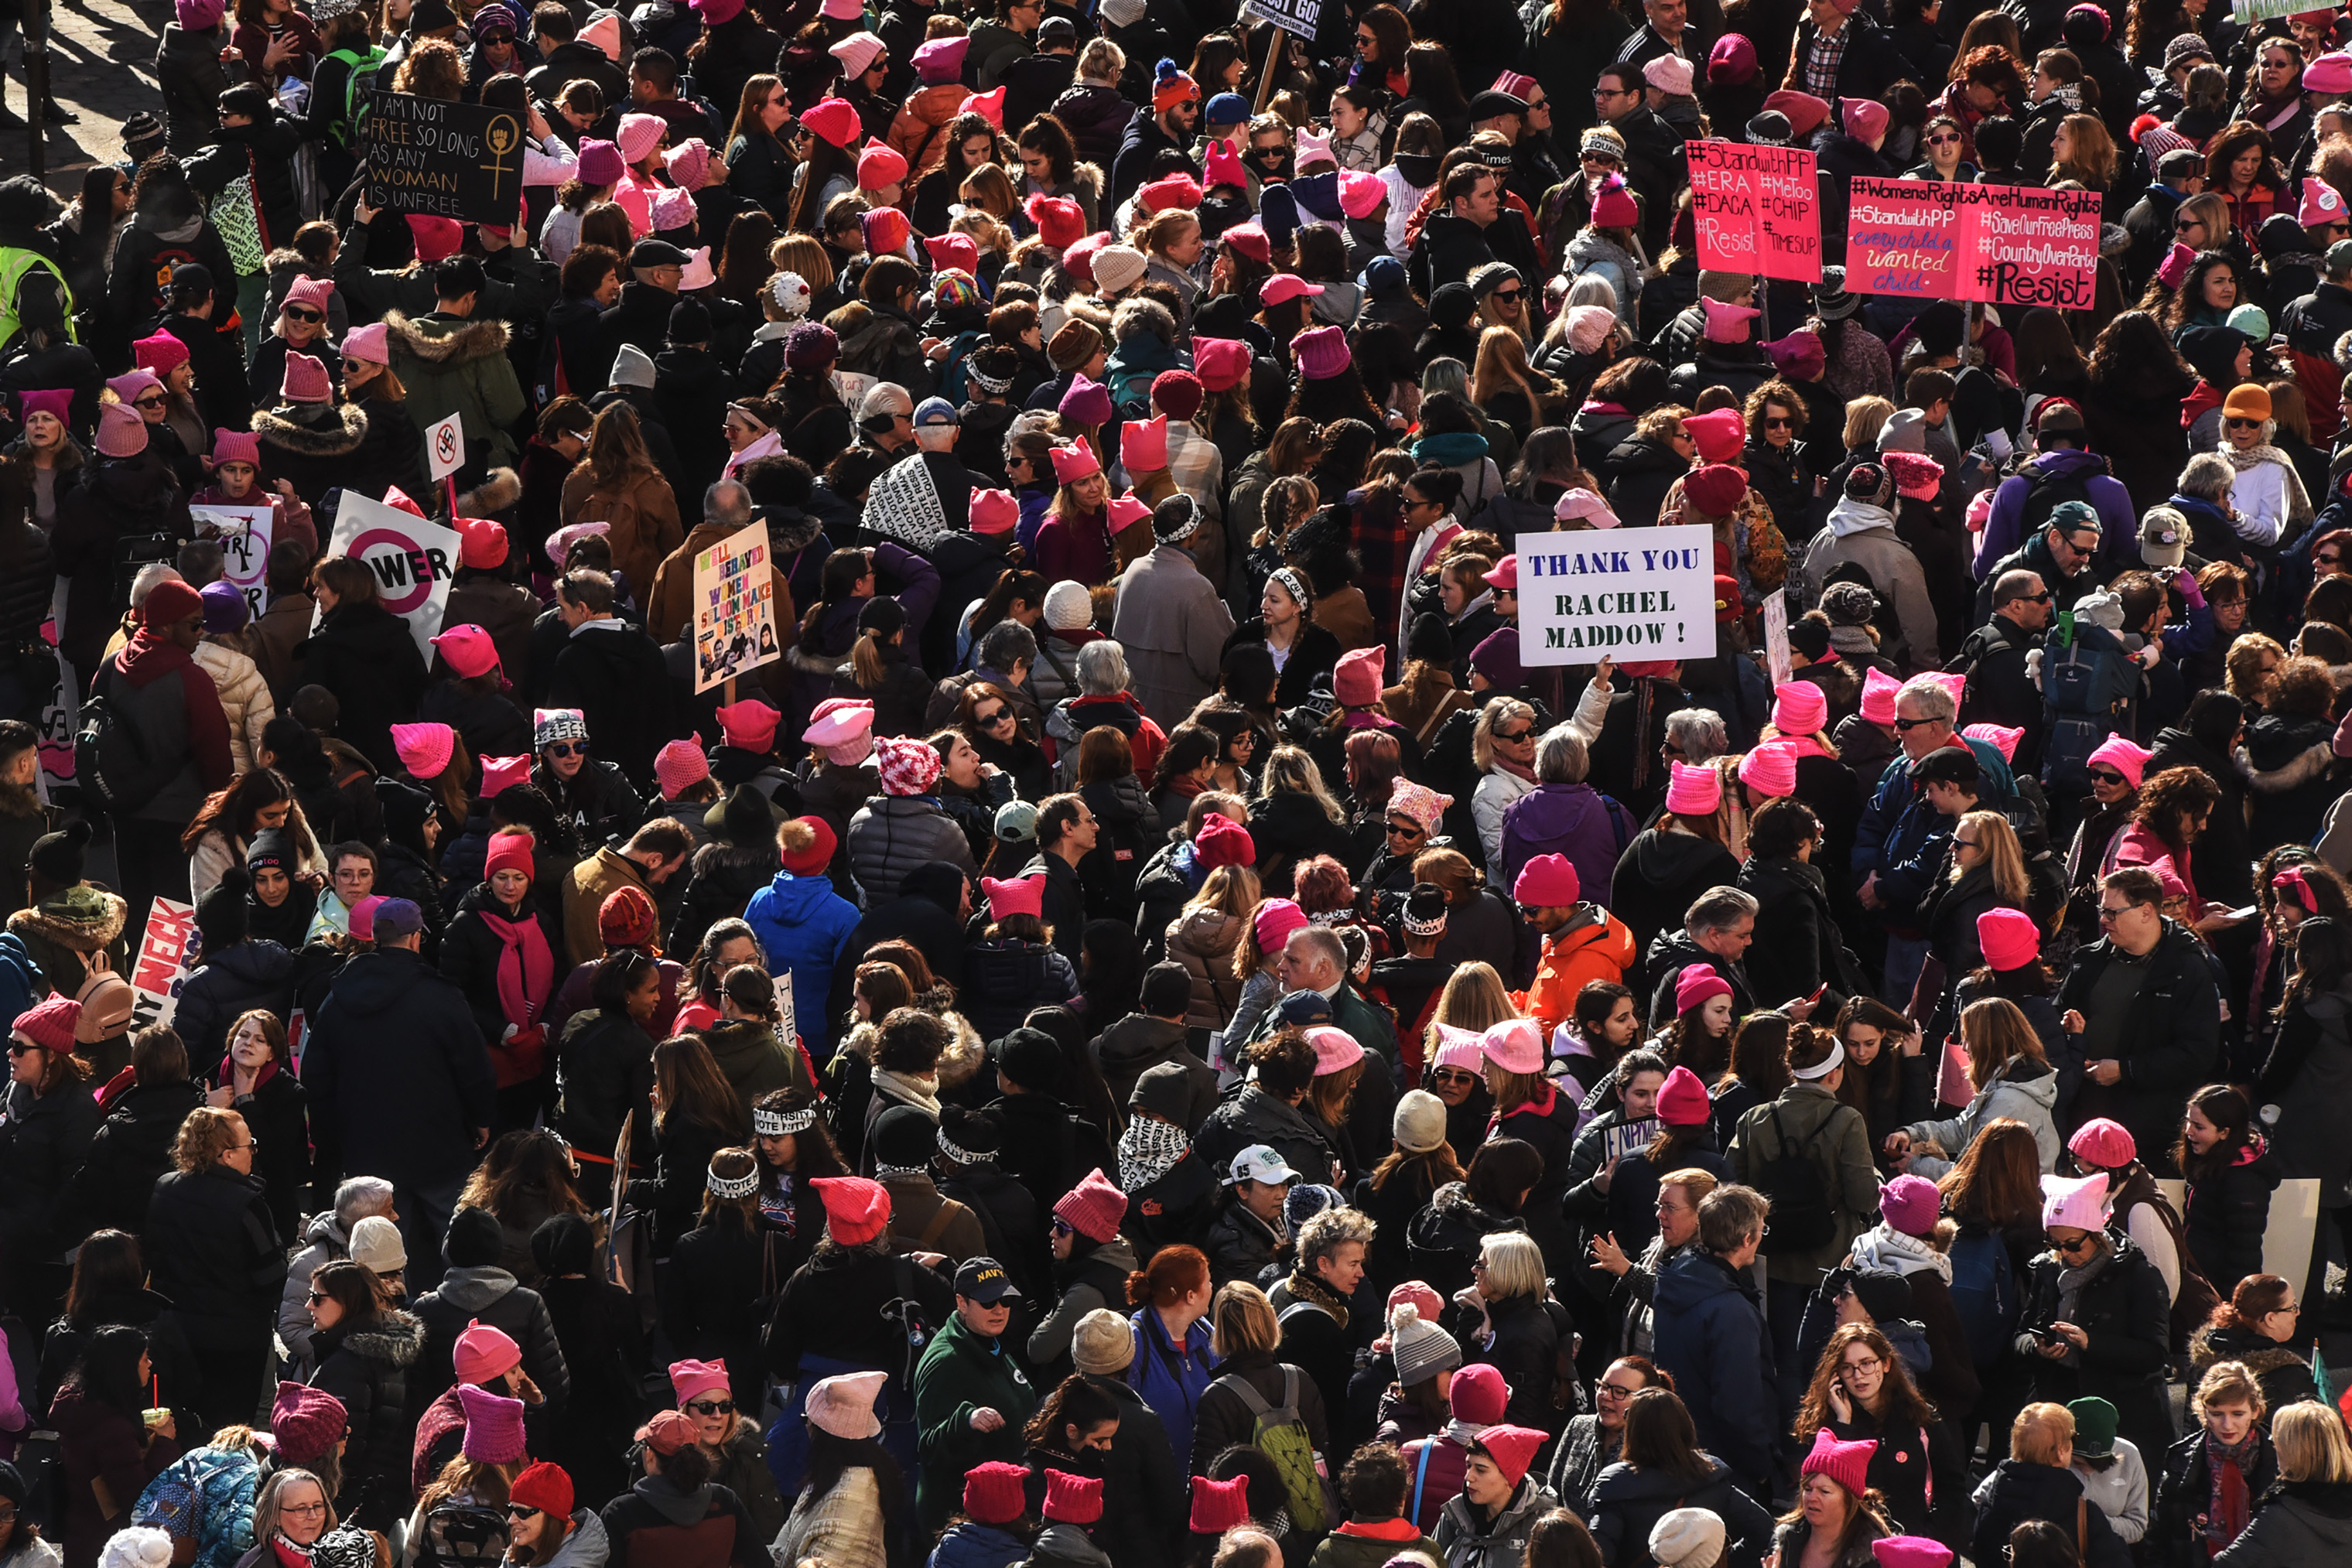 People gather near Central Park before the beginning of the Women's March in New York City, on Jan. 20, 2018.